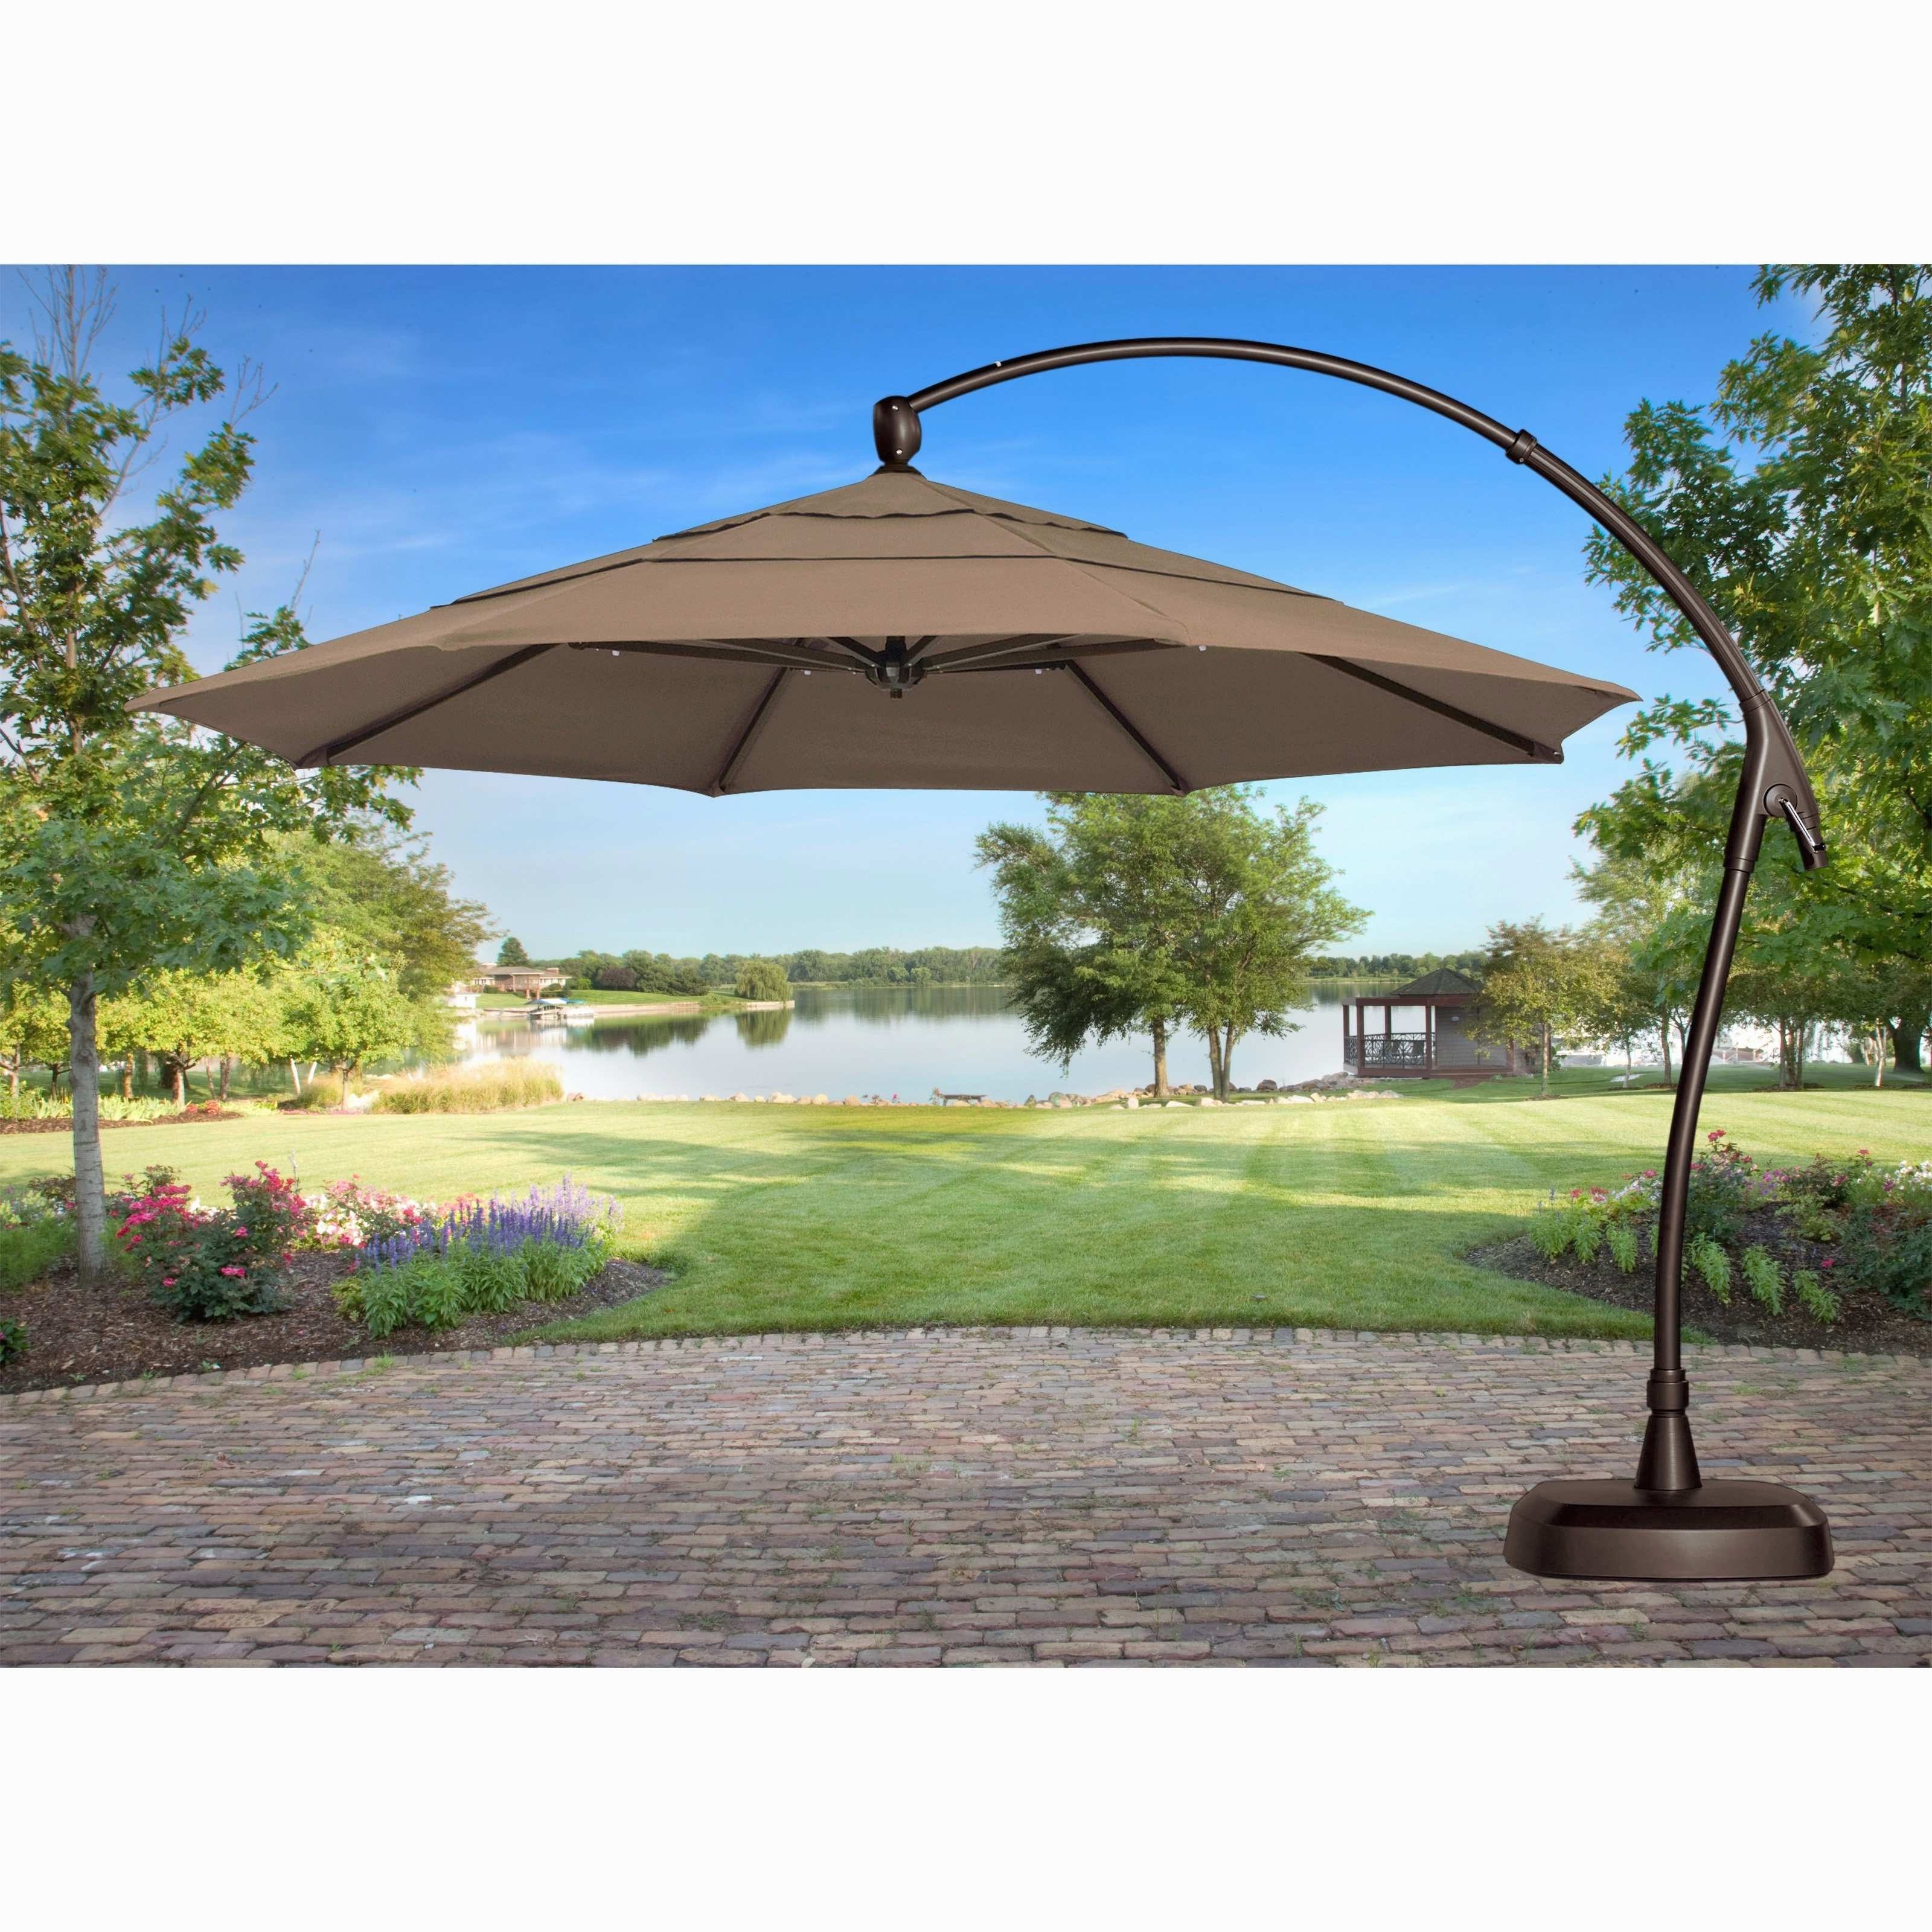 Garden Treasures Patio Umbrellas Inside Favorite 29 Astonishing Small Cantilever Patio Umbrella (View 8 of 20)